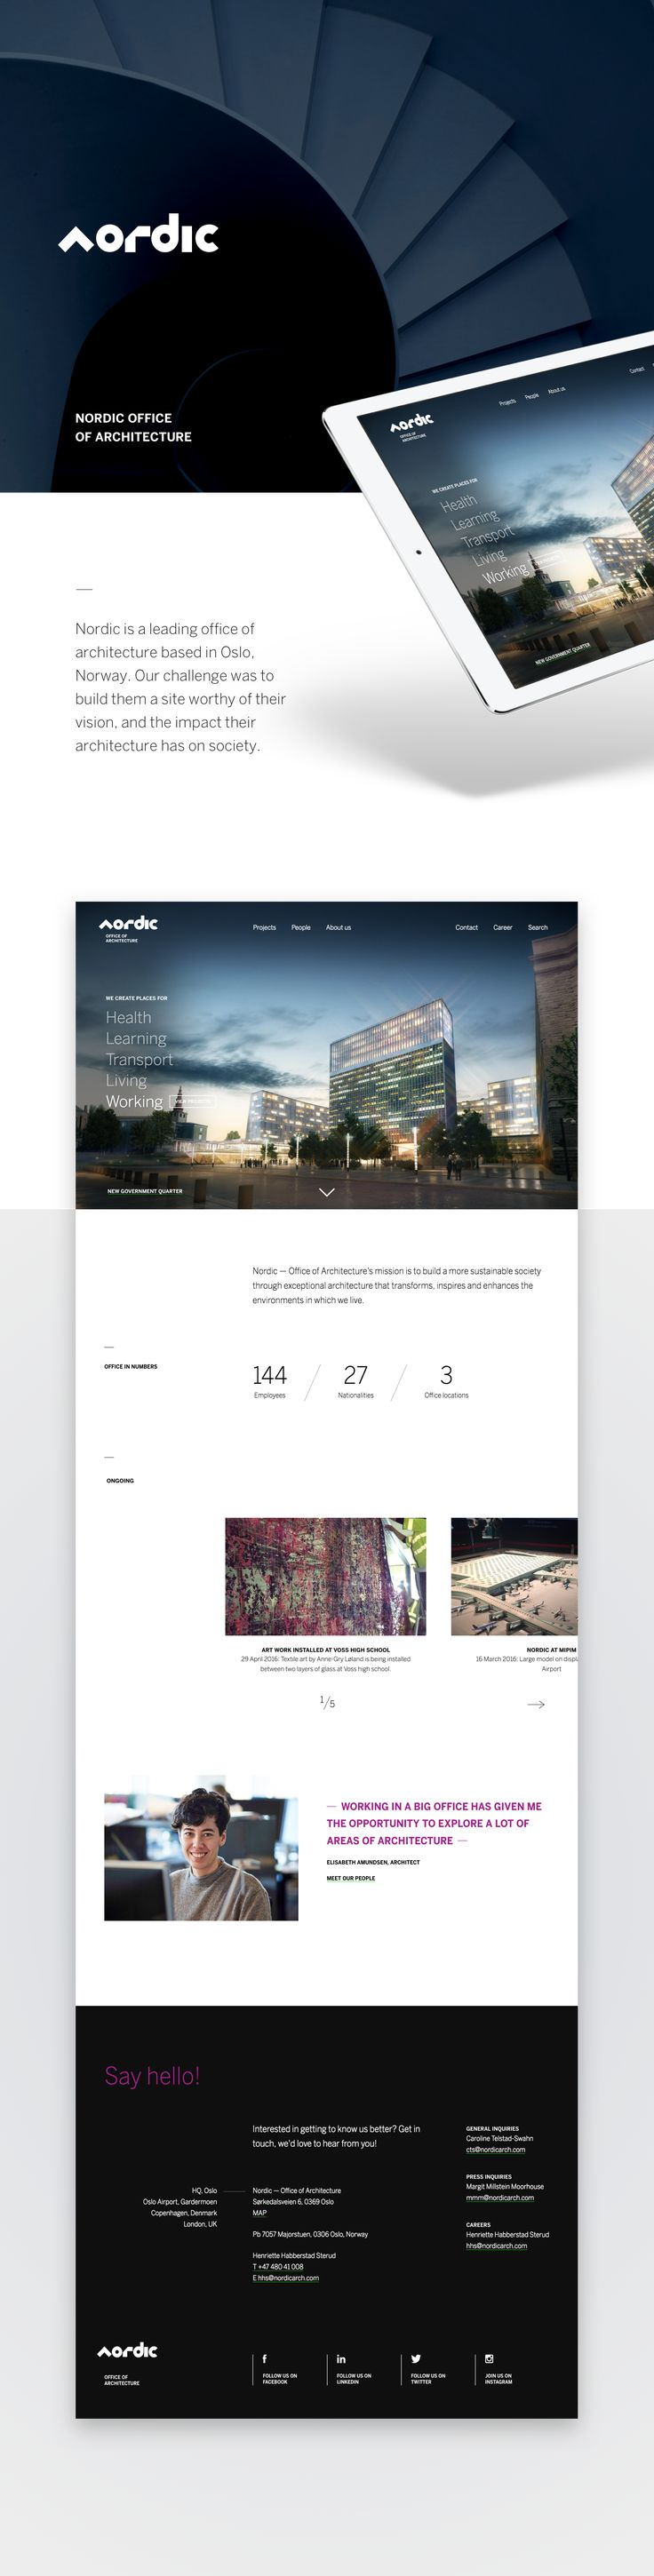 Nordic – Office of Architecture on Behance